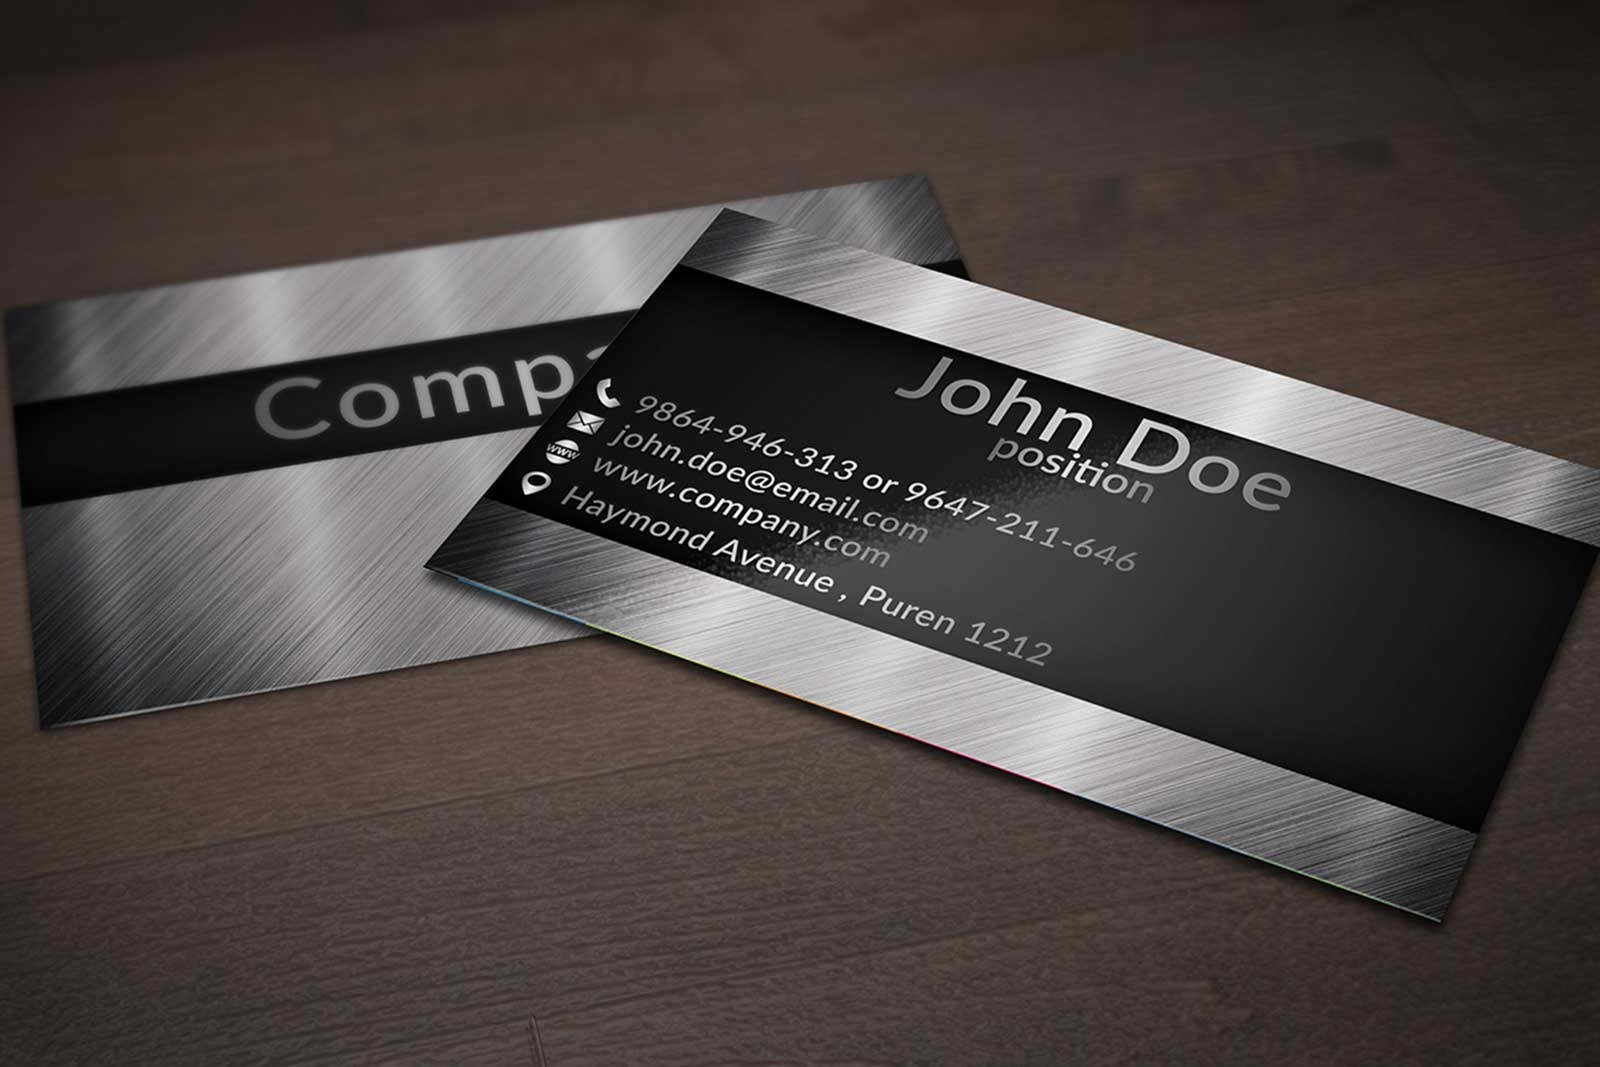 40 unique stylish psd corporate business card designs for free creative business card design on brushed background colourmoves